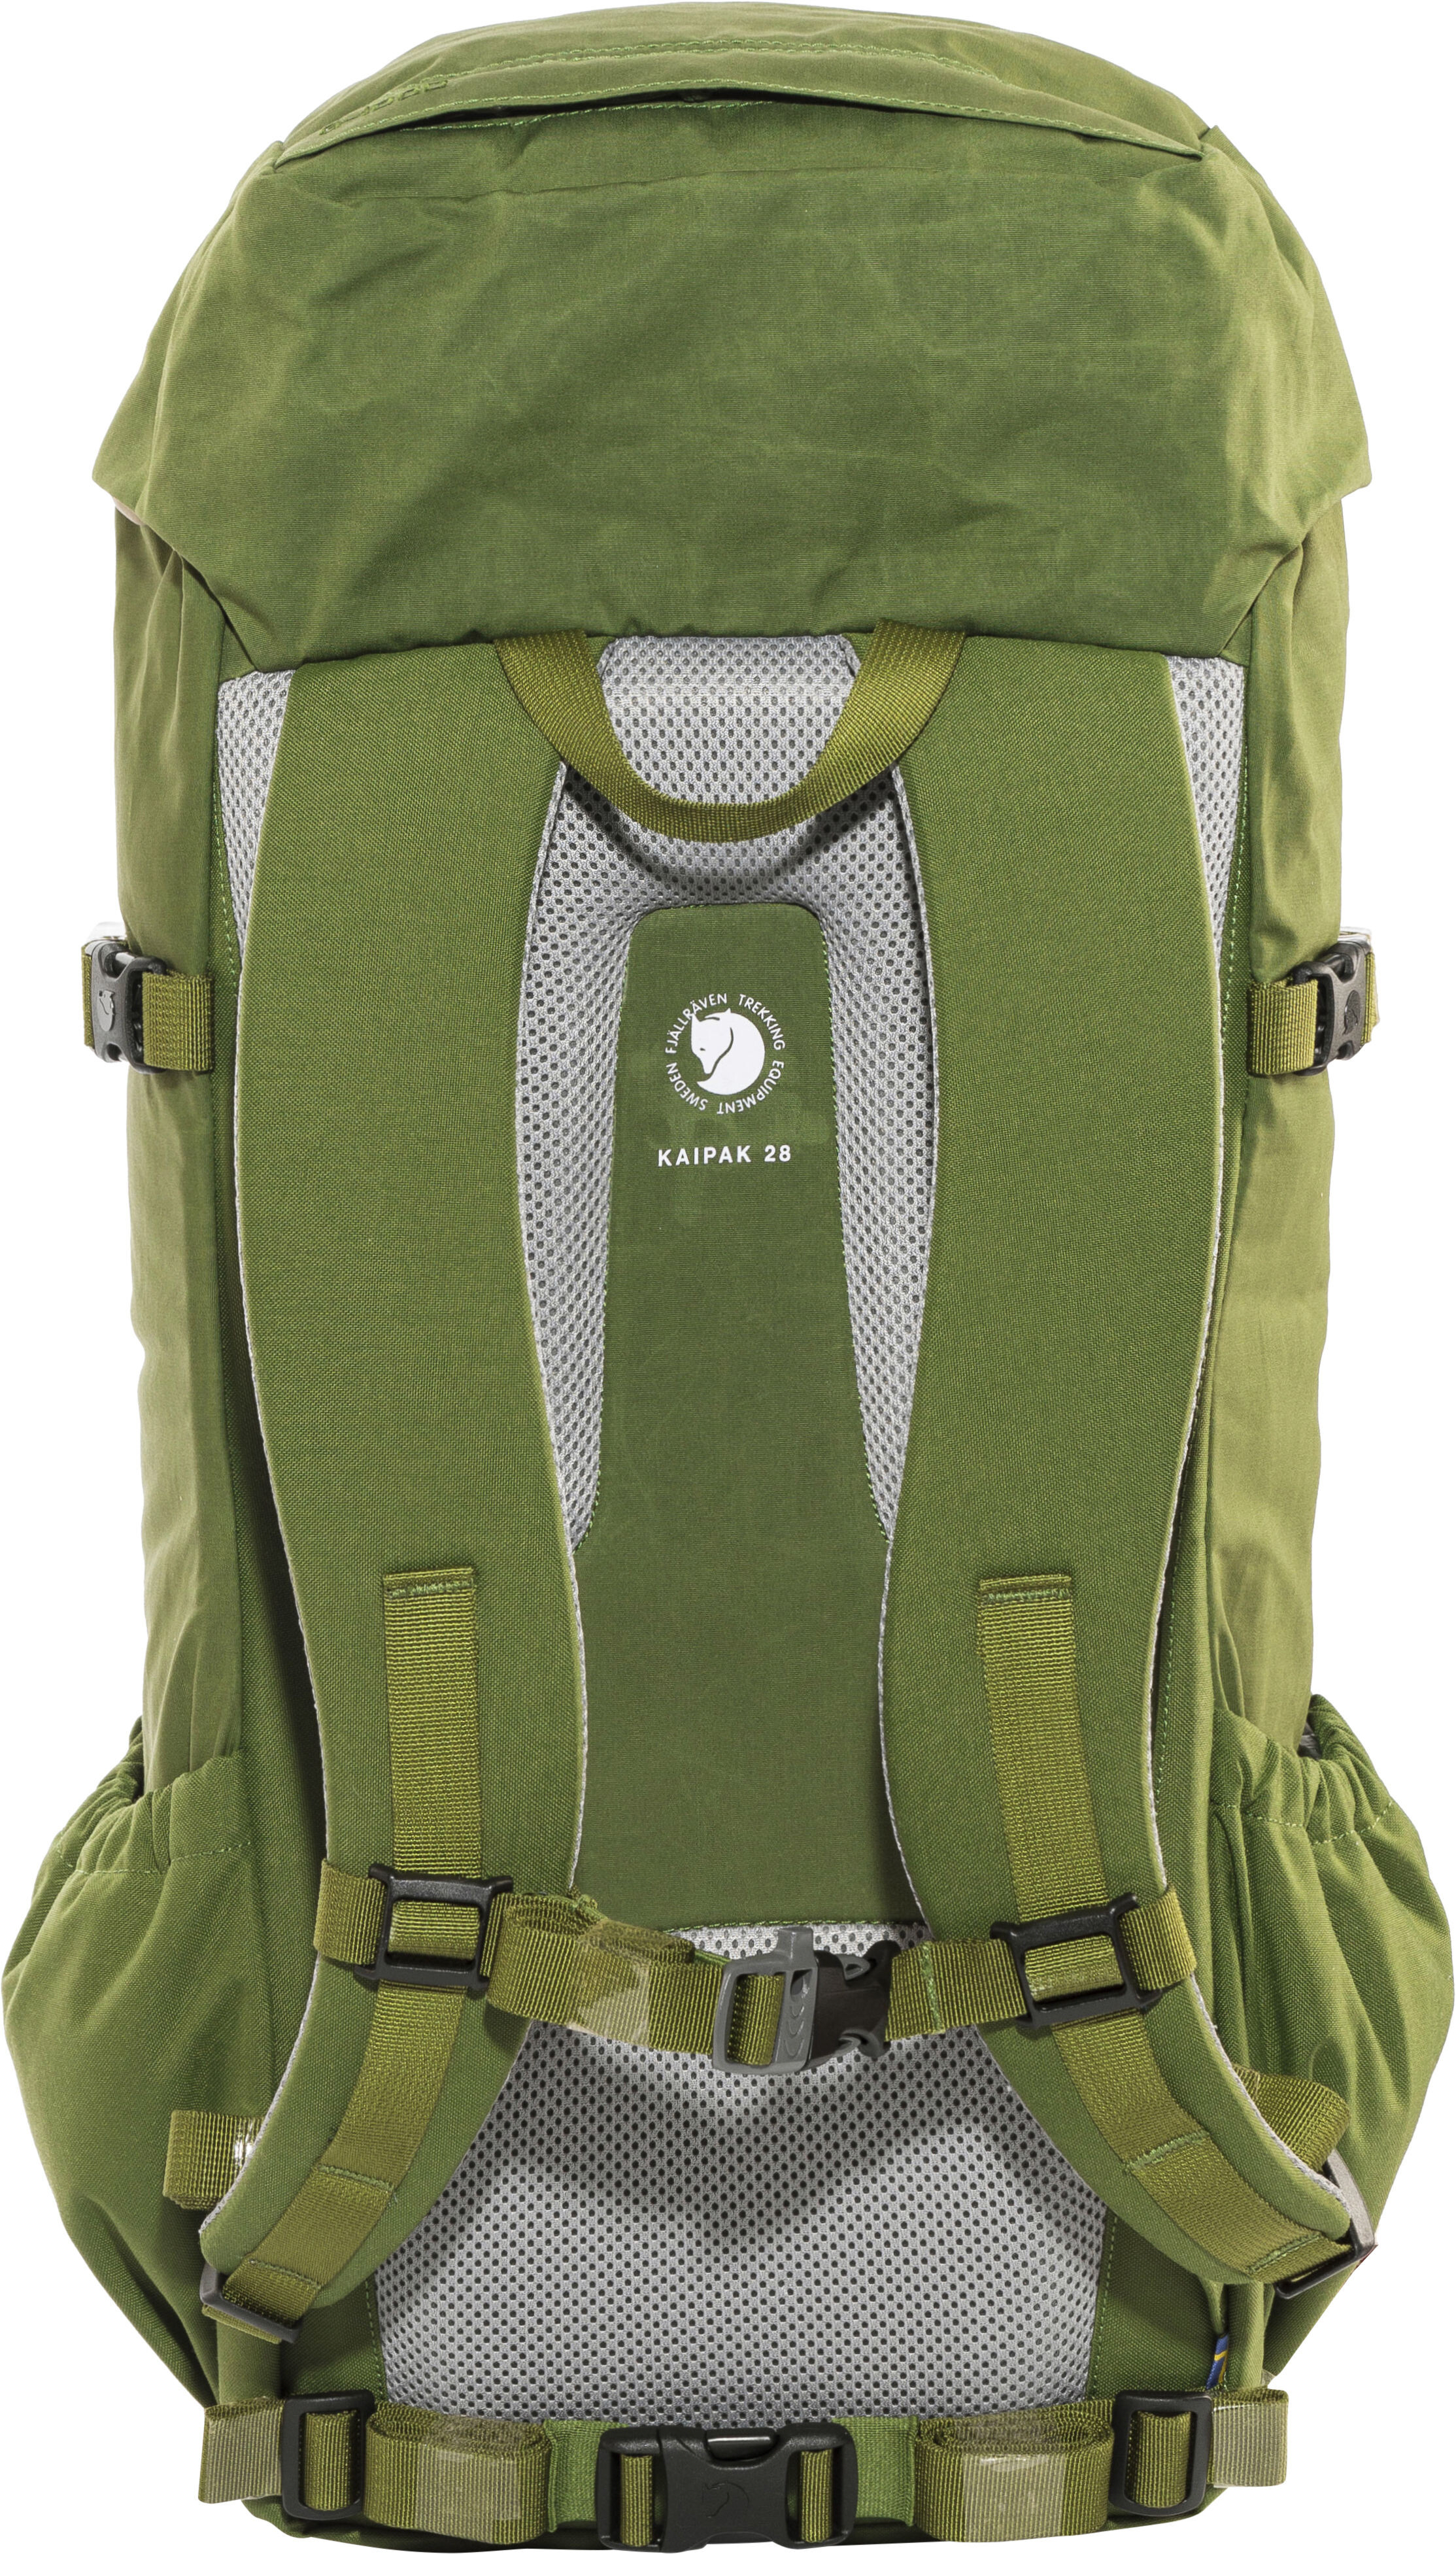 Fj 228 Llr 228 Ven Kaipak 28 Backpack Pine Green At Addnature Co Uk